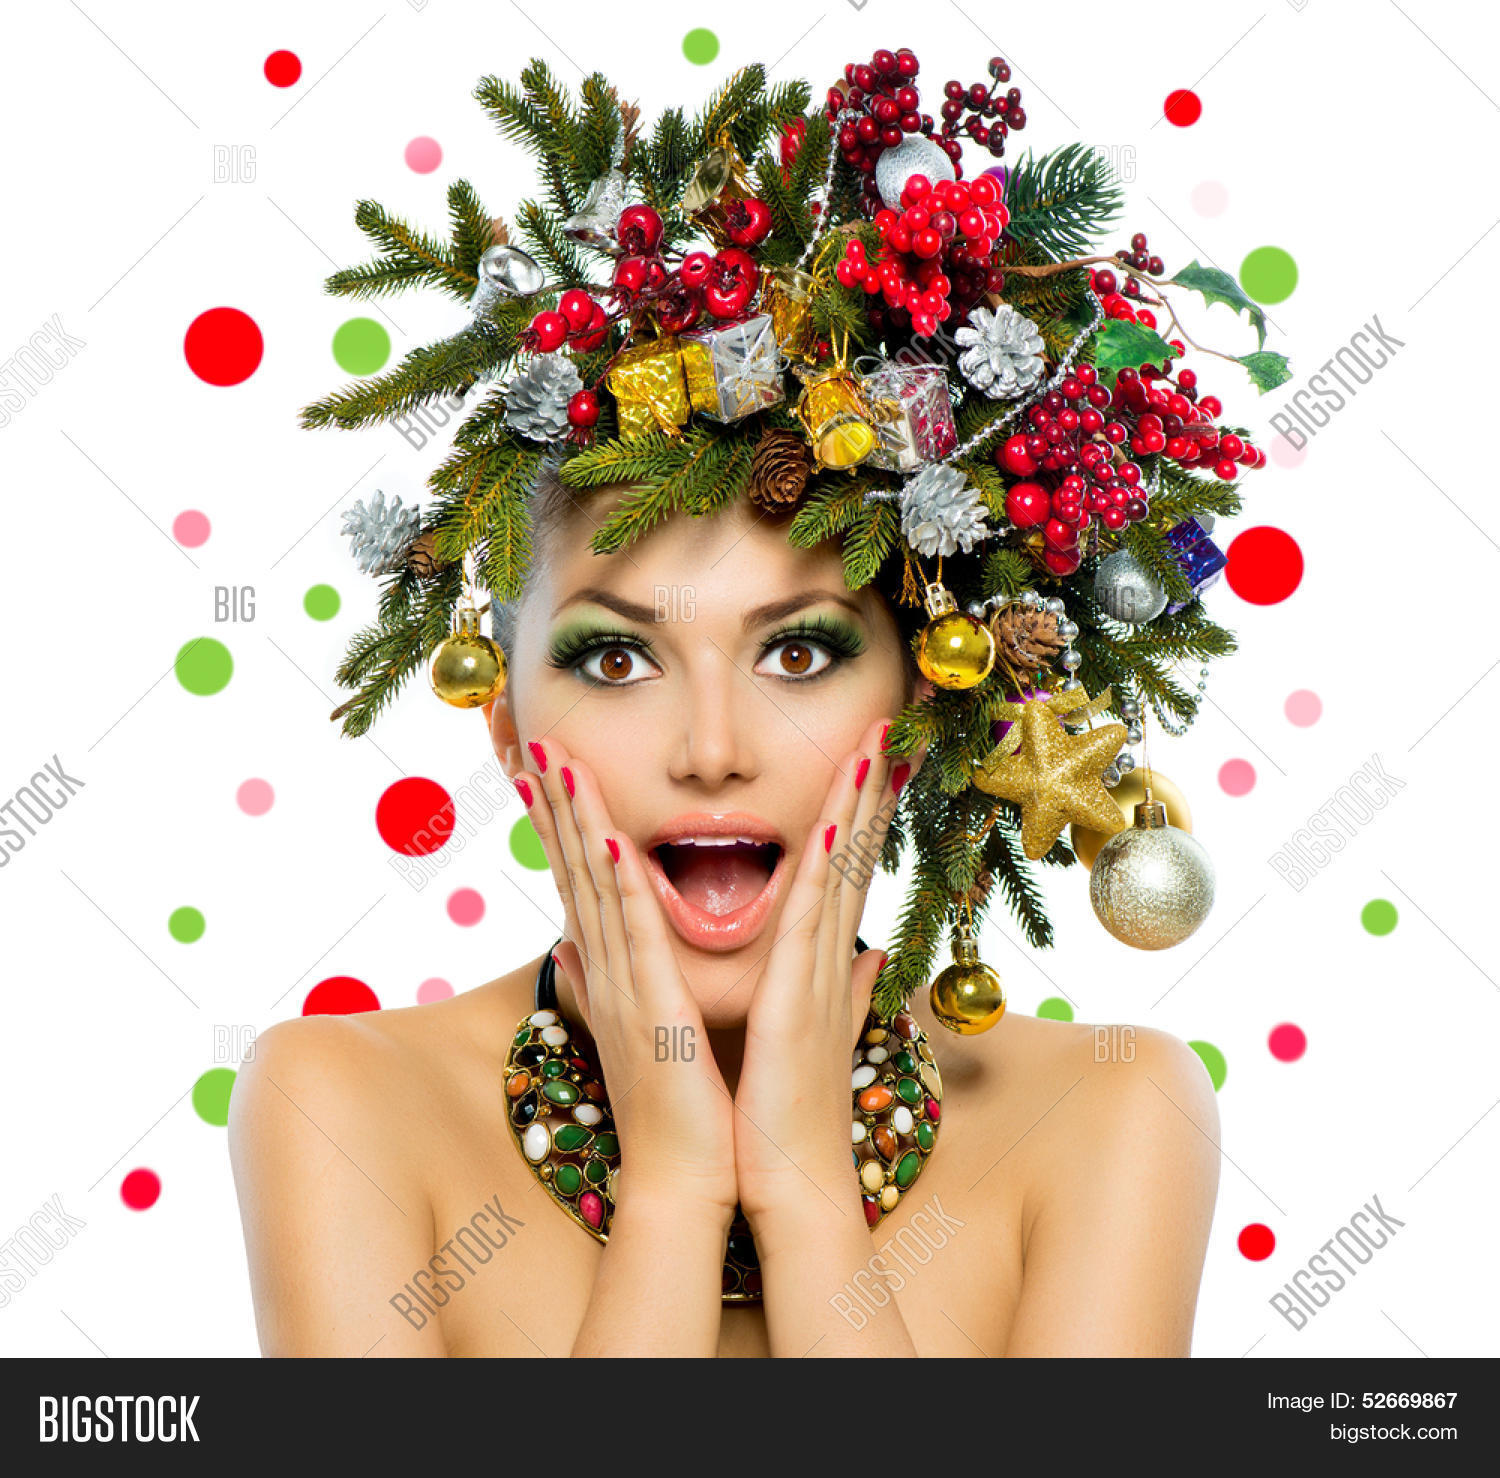 Christmas Woman Beautiful New Year And Tree Holiday Hairstyle Make Up Beauty